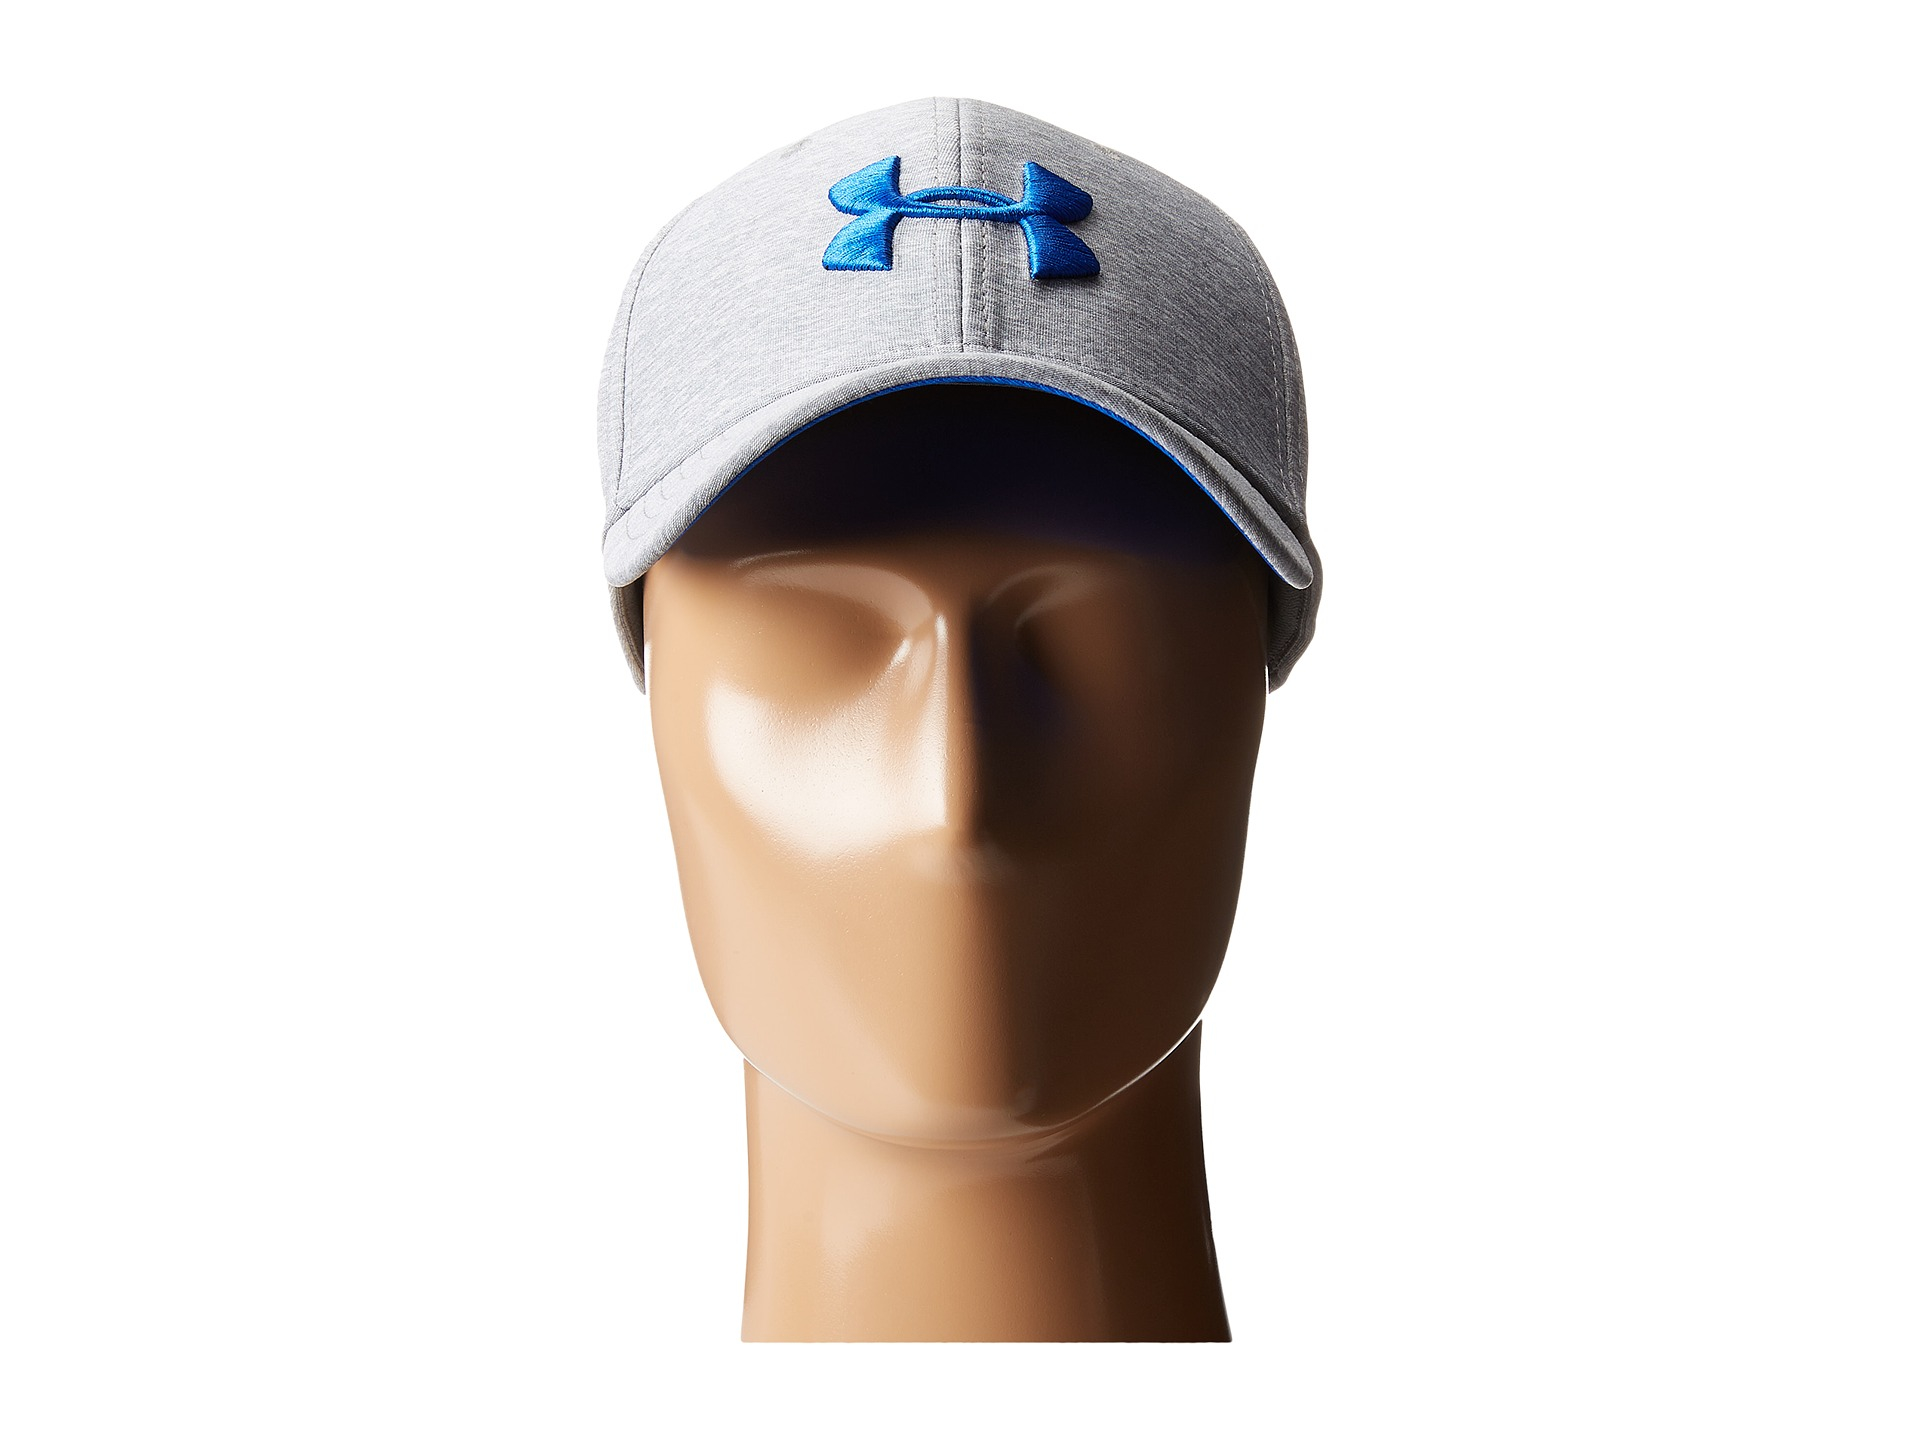 Lyst - Under Armour Ua Twisttech Closer Cap in Gray for Men ee7e4343ace